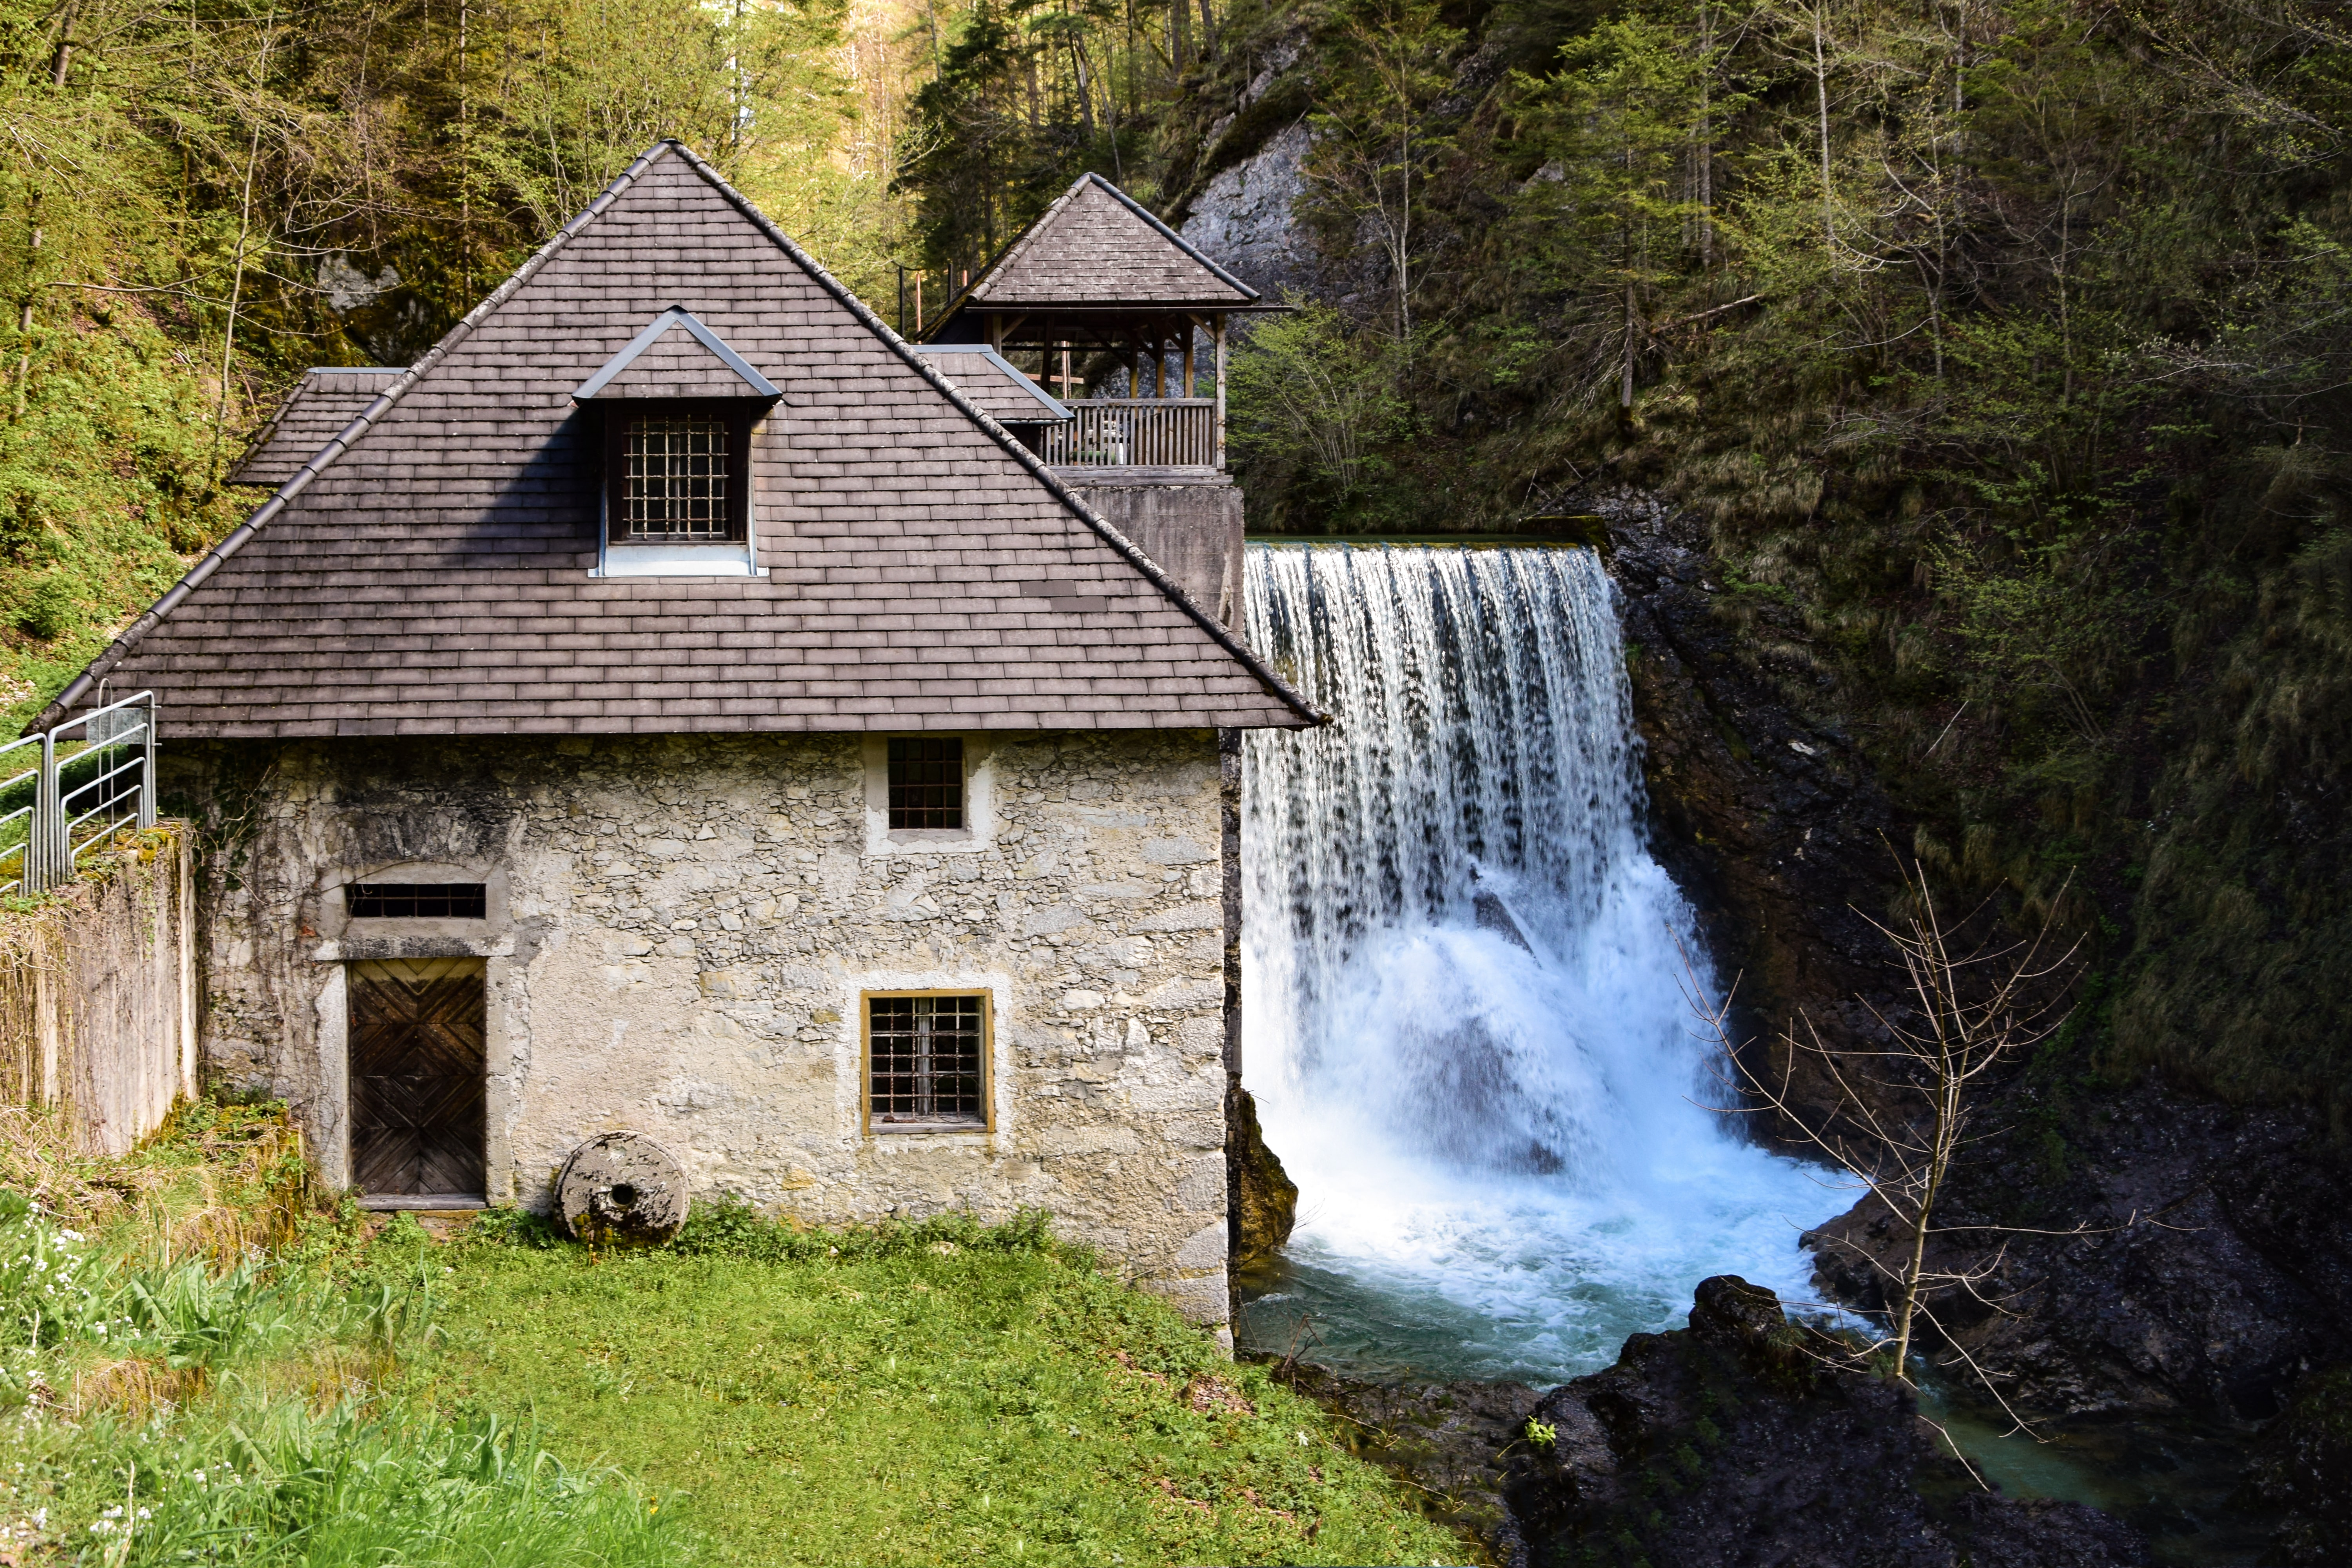 An old building next to a small waterfall in a forest